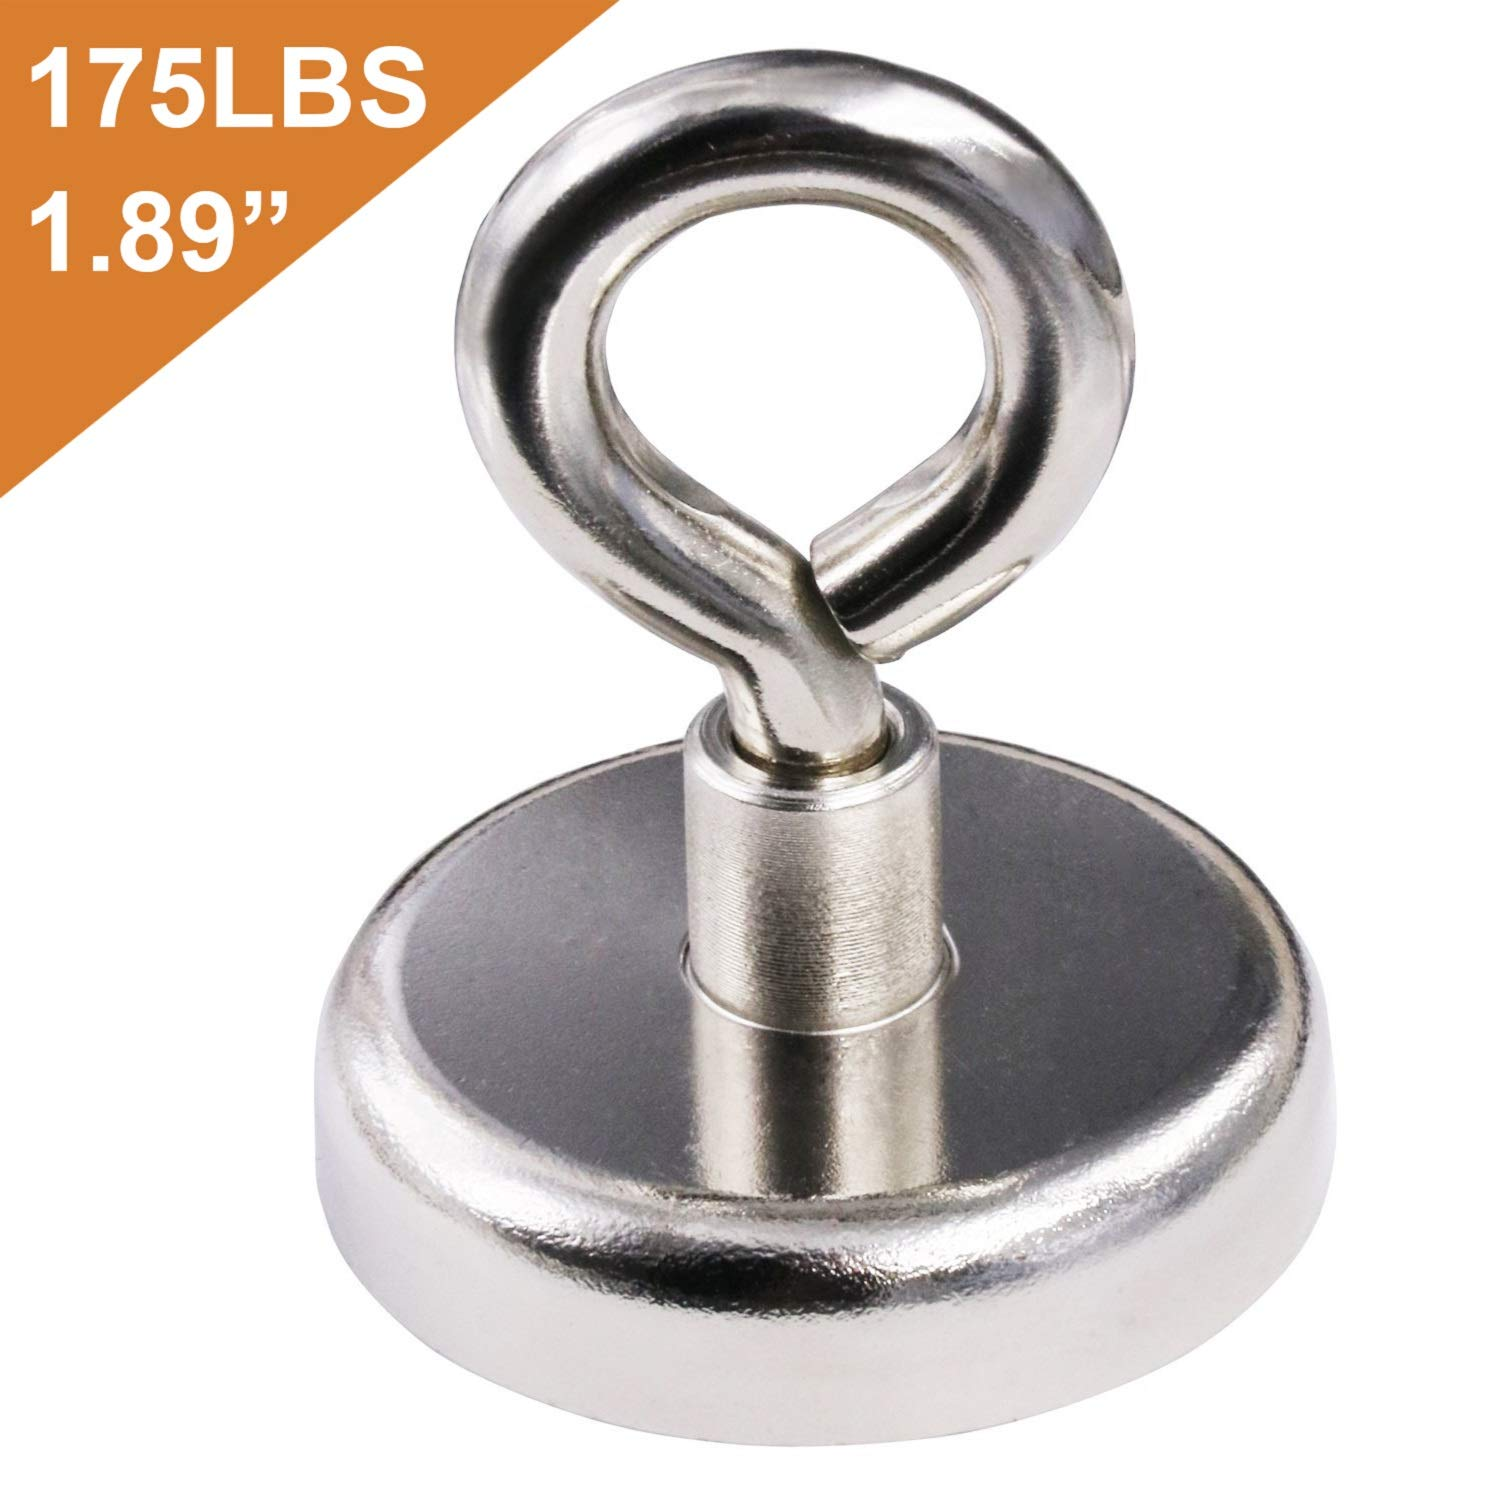 1x 330LB Fishing Magnet Neodymium for Retrieving in River and Magnetic Fishing